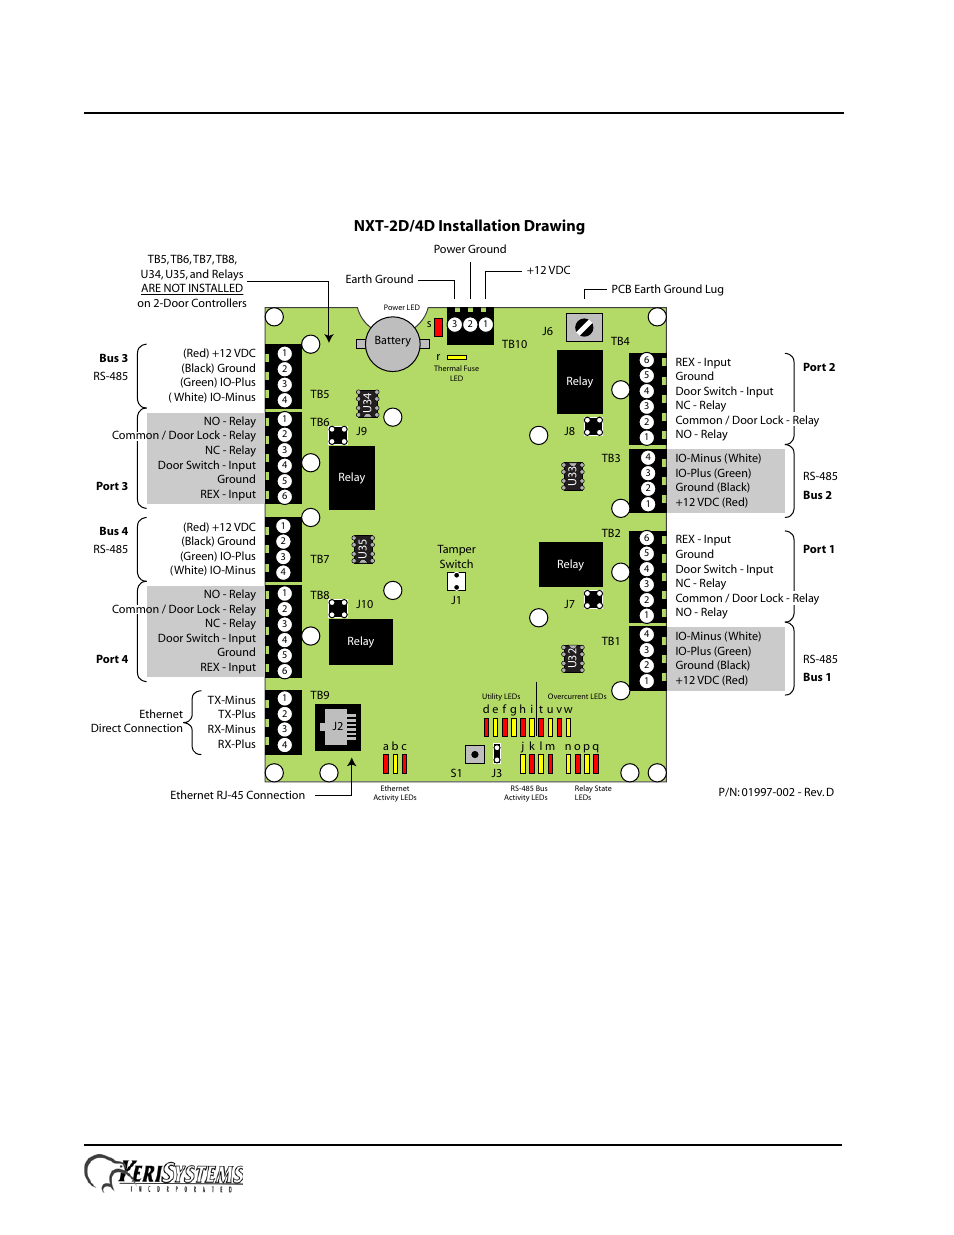 keri systems nxt 4 d page1 keri systems nxt 4 d user manual 6 pages also for nxt 2 d 4D Diagram Architecture at soozxer.org